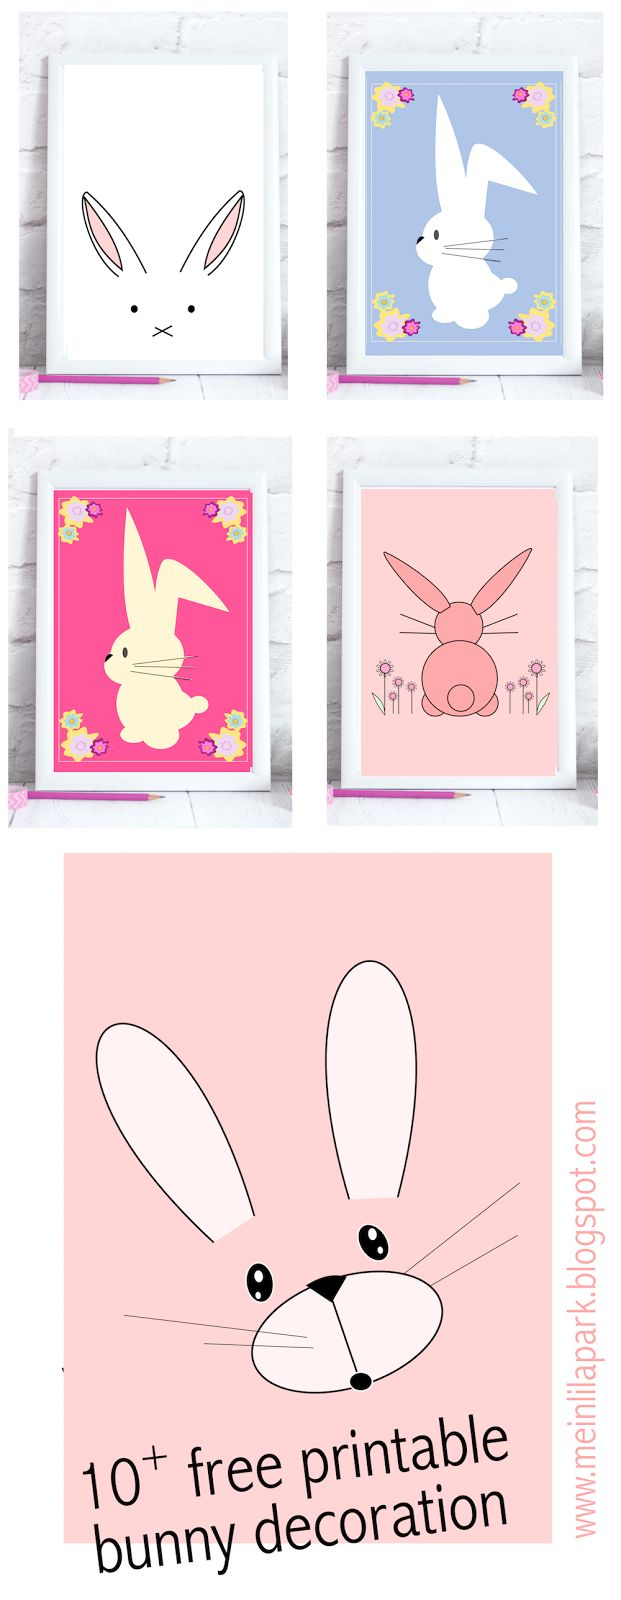 268 best Easter images on Pinterest | Easter ideas, Easter and ...